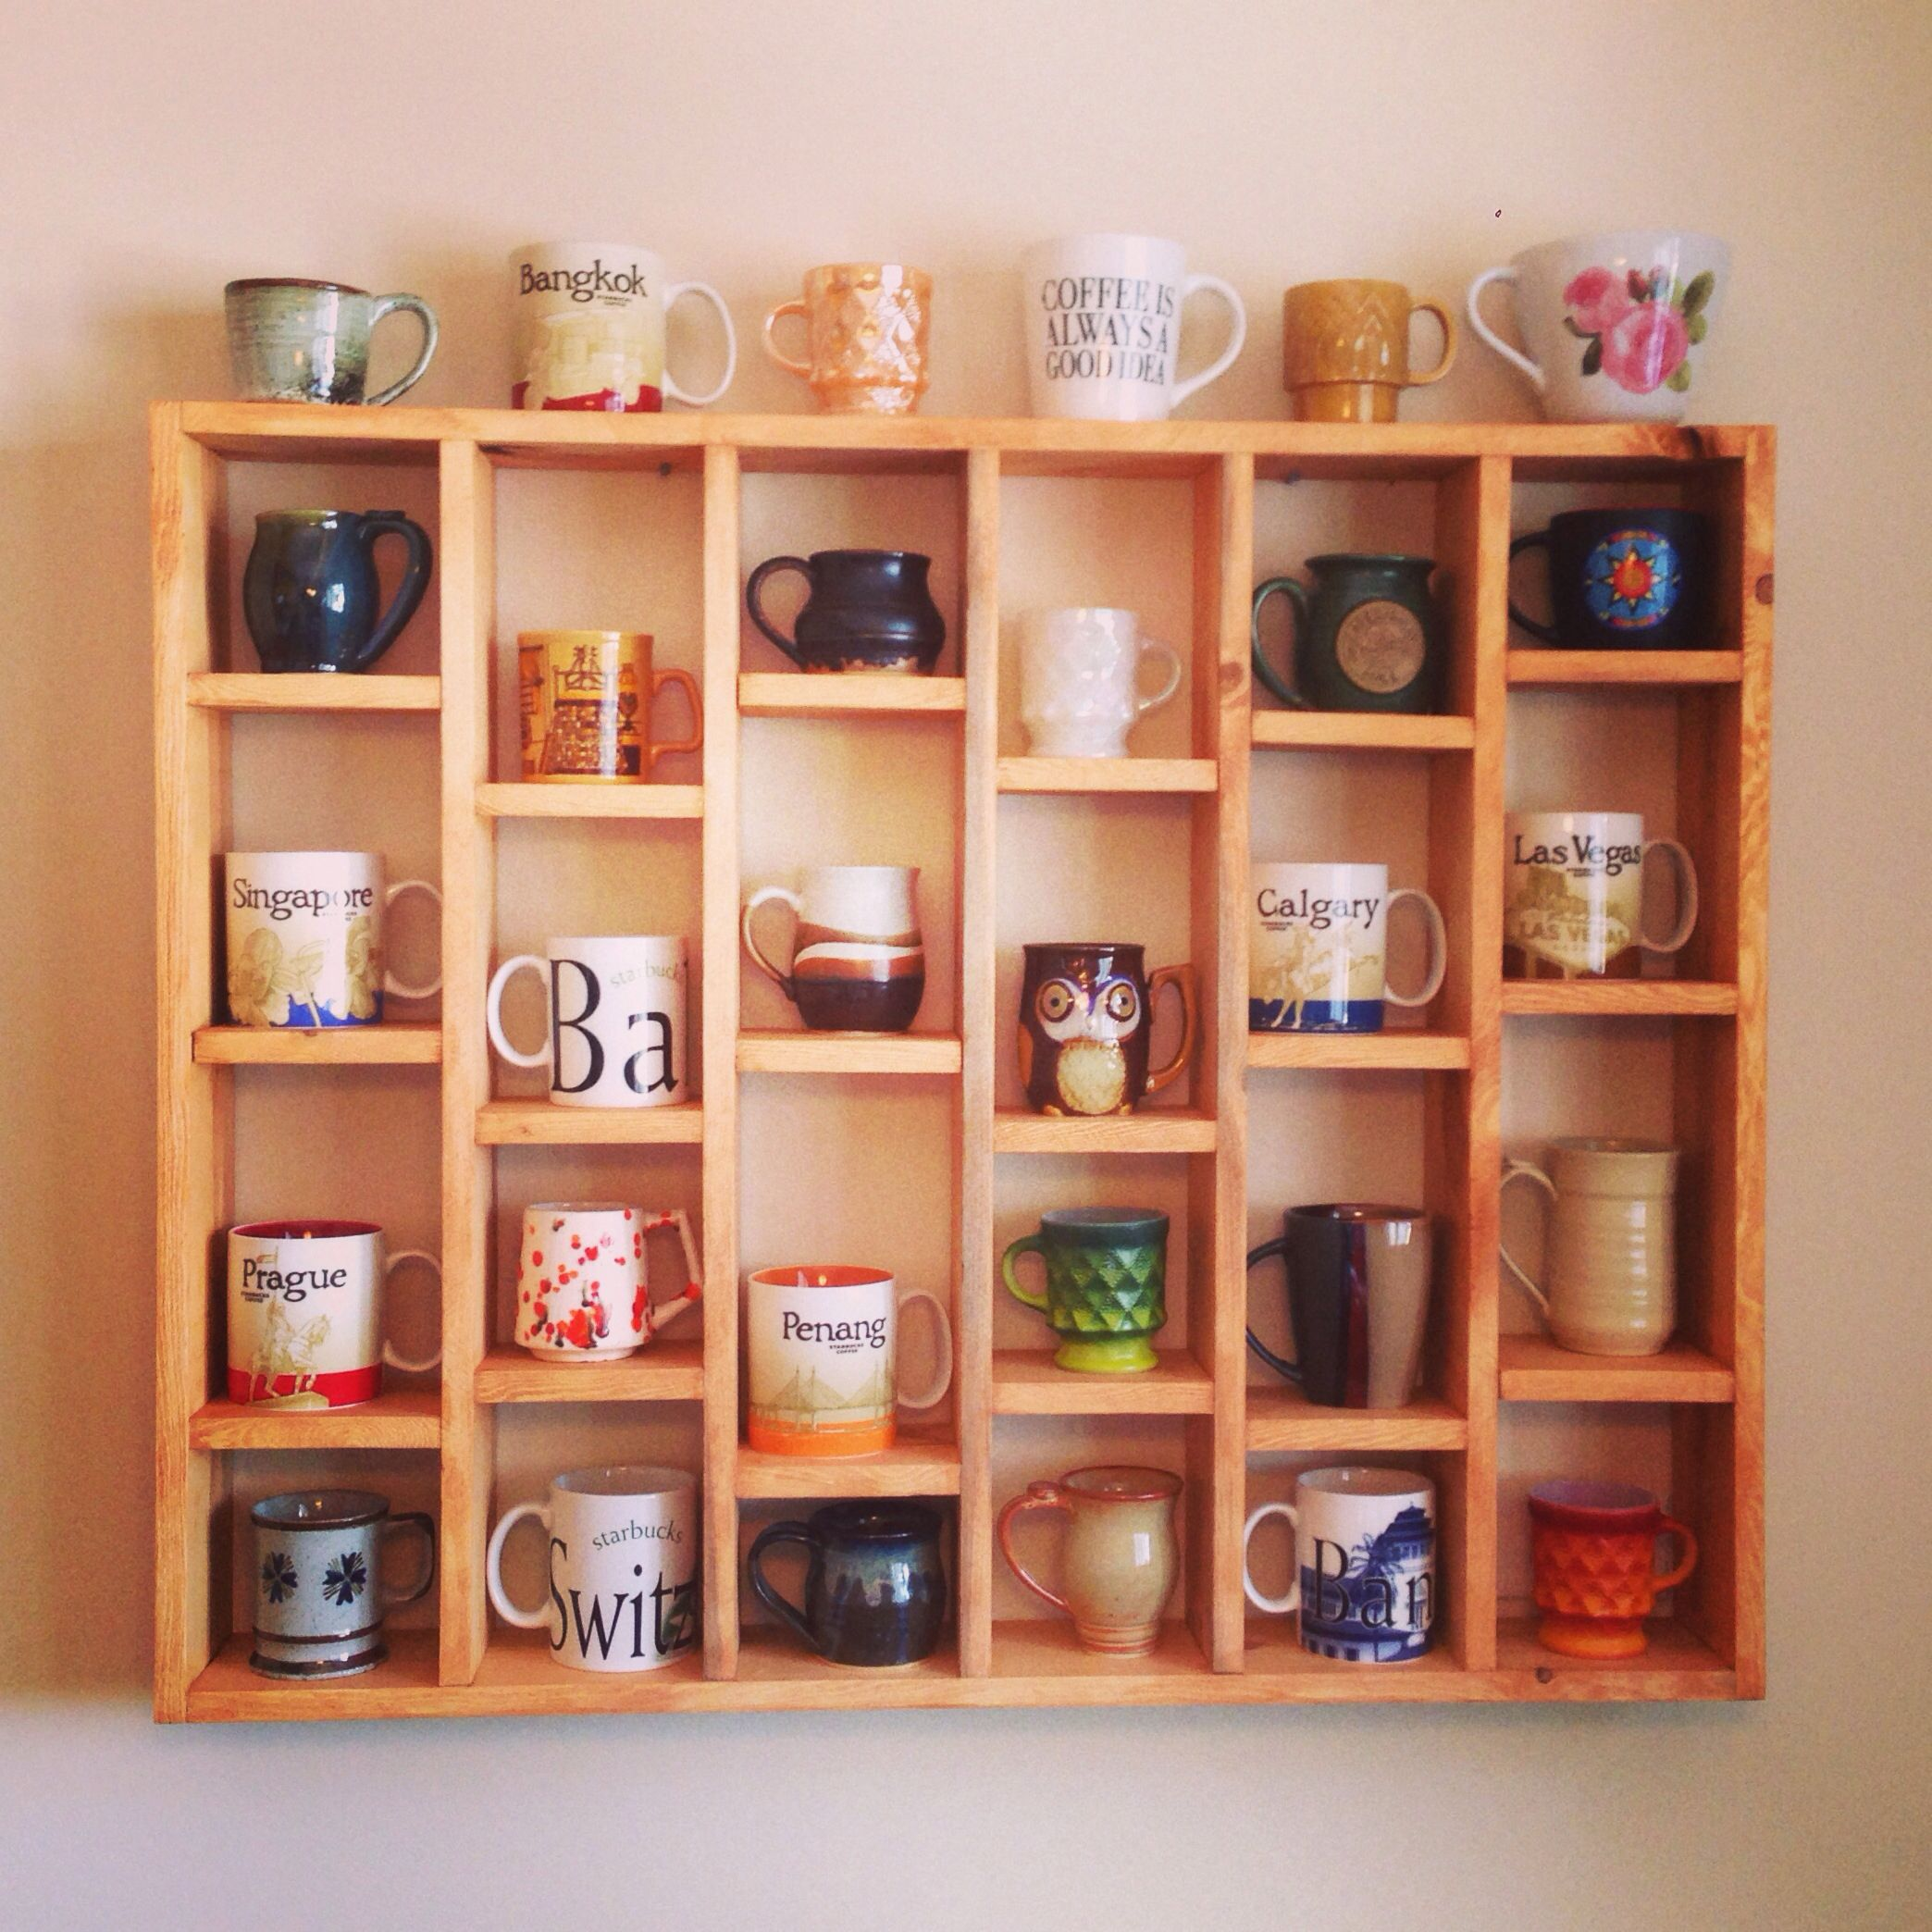 Mug Shelf My Diy Mug Display Mug Display Coffee Mug Display Diy Mugs